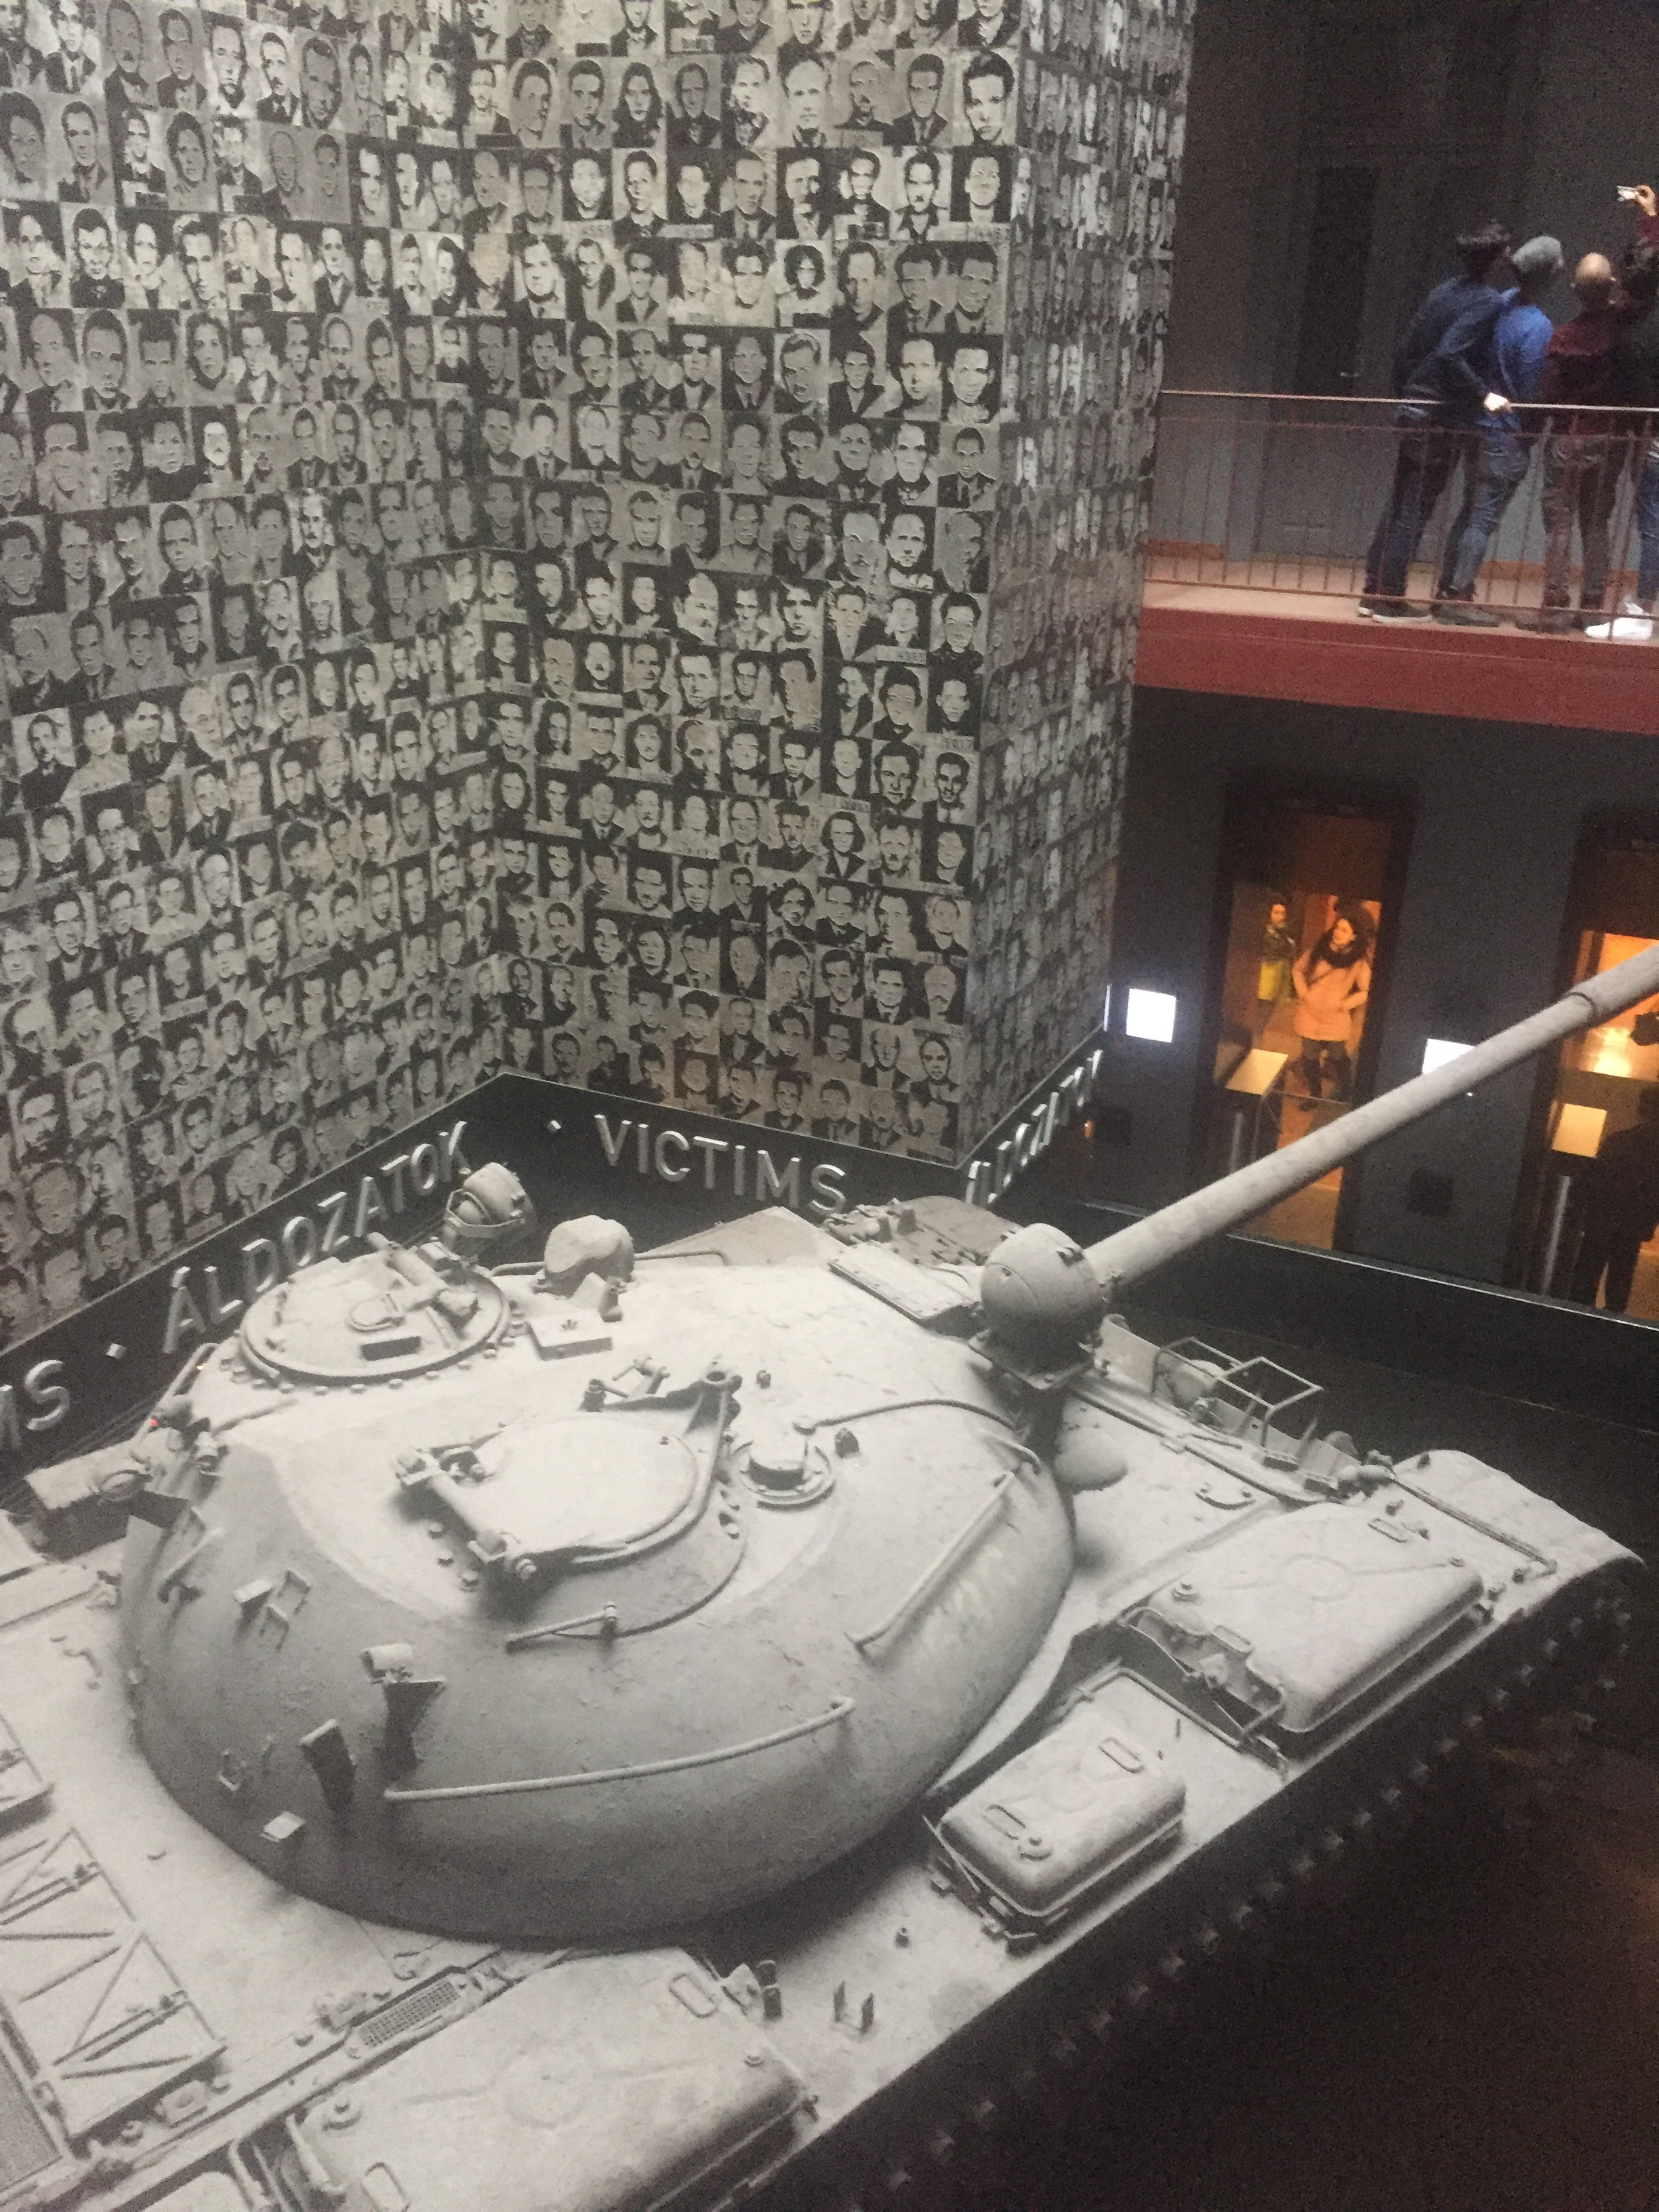 Inside the house of terror in Budapest is a tank and a wall of victims faces.